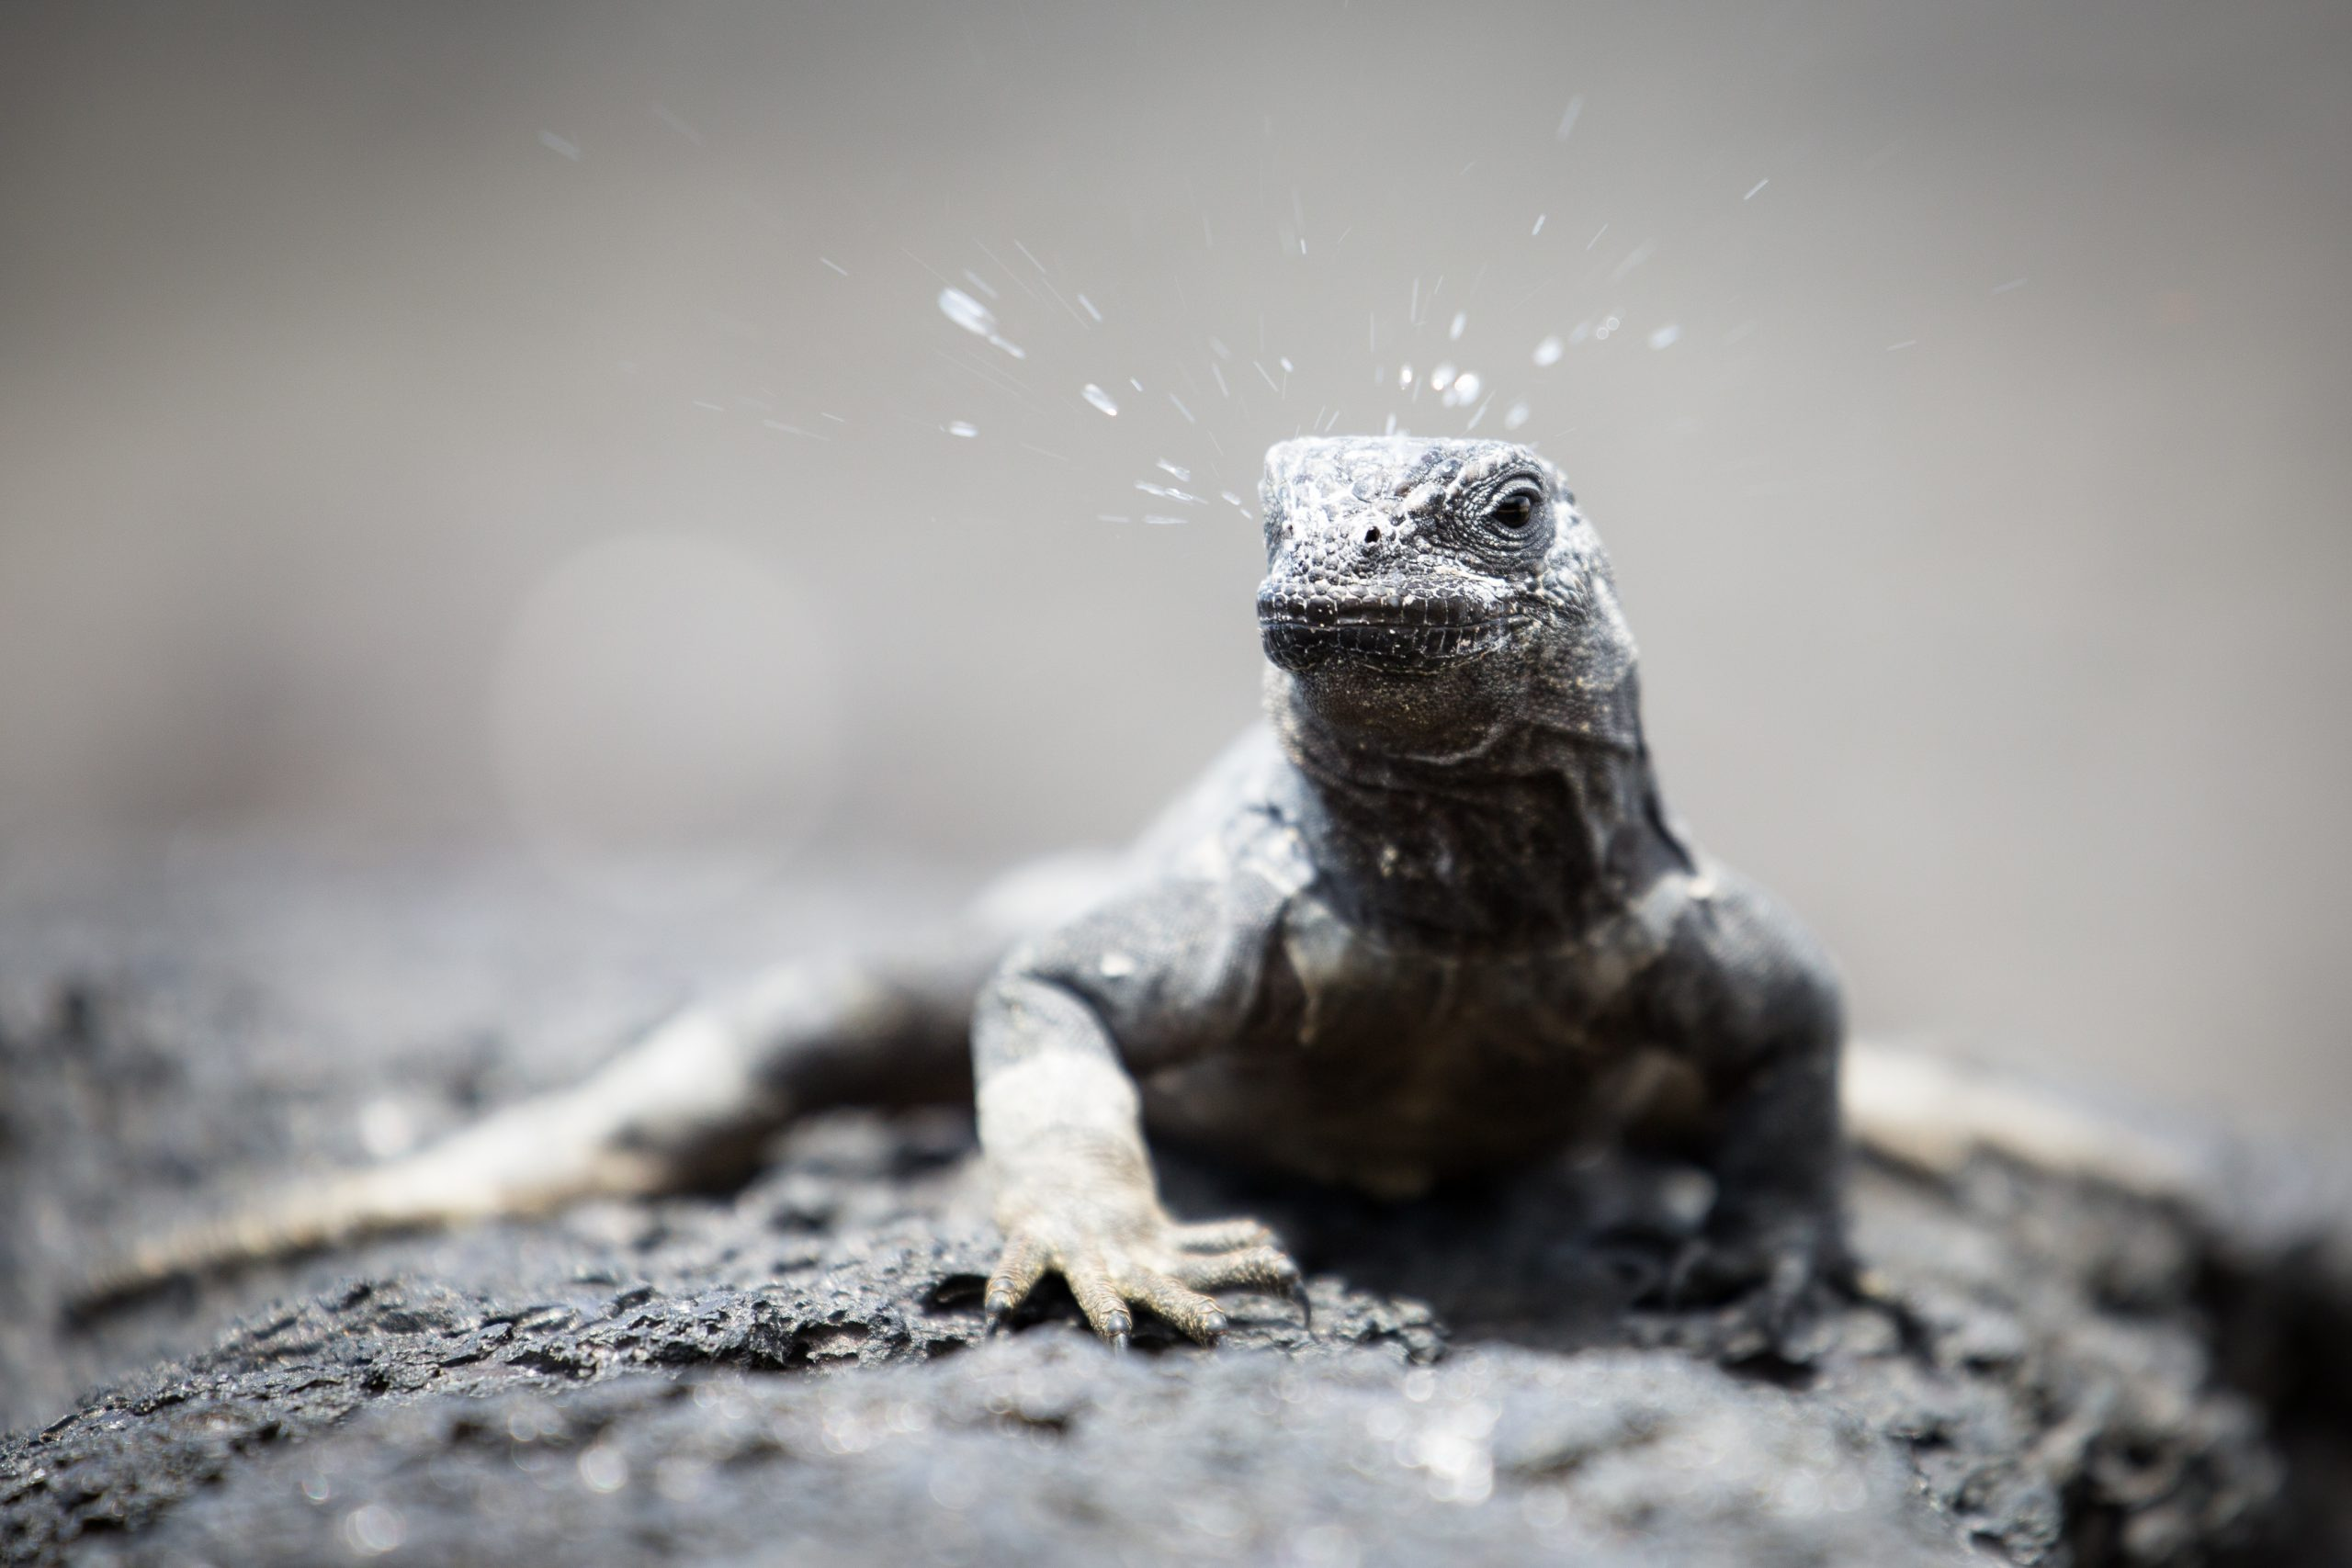 Overall 3rd Place and Animals in Action Winner - Young marine iguana sneezing © Kim de Buiteléir